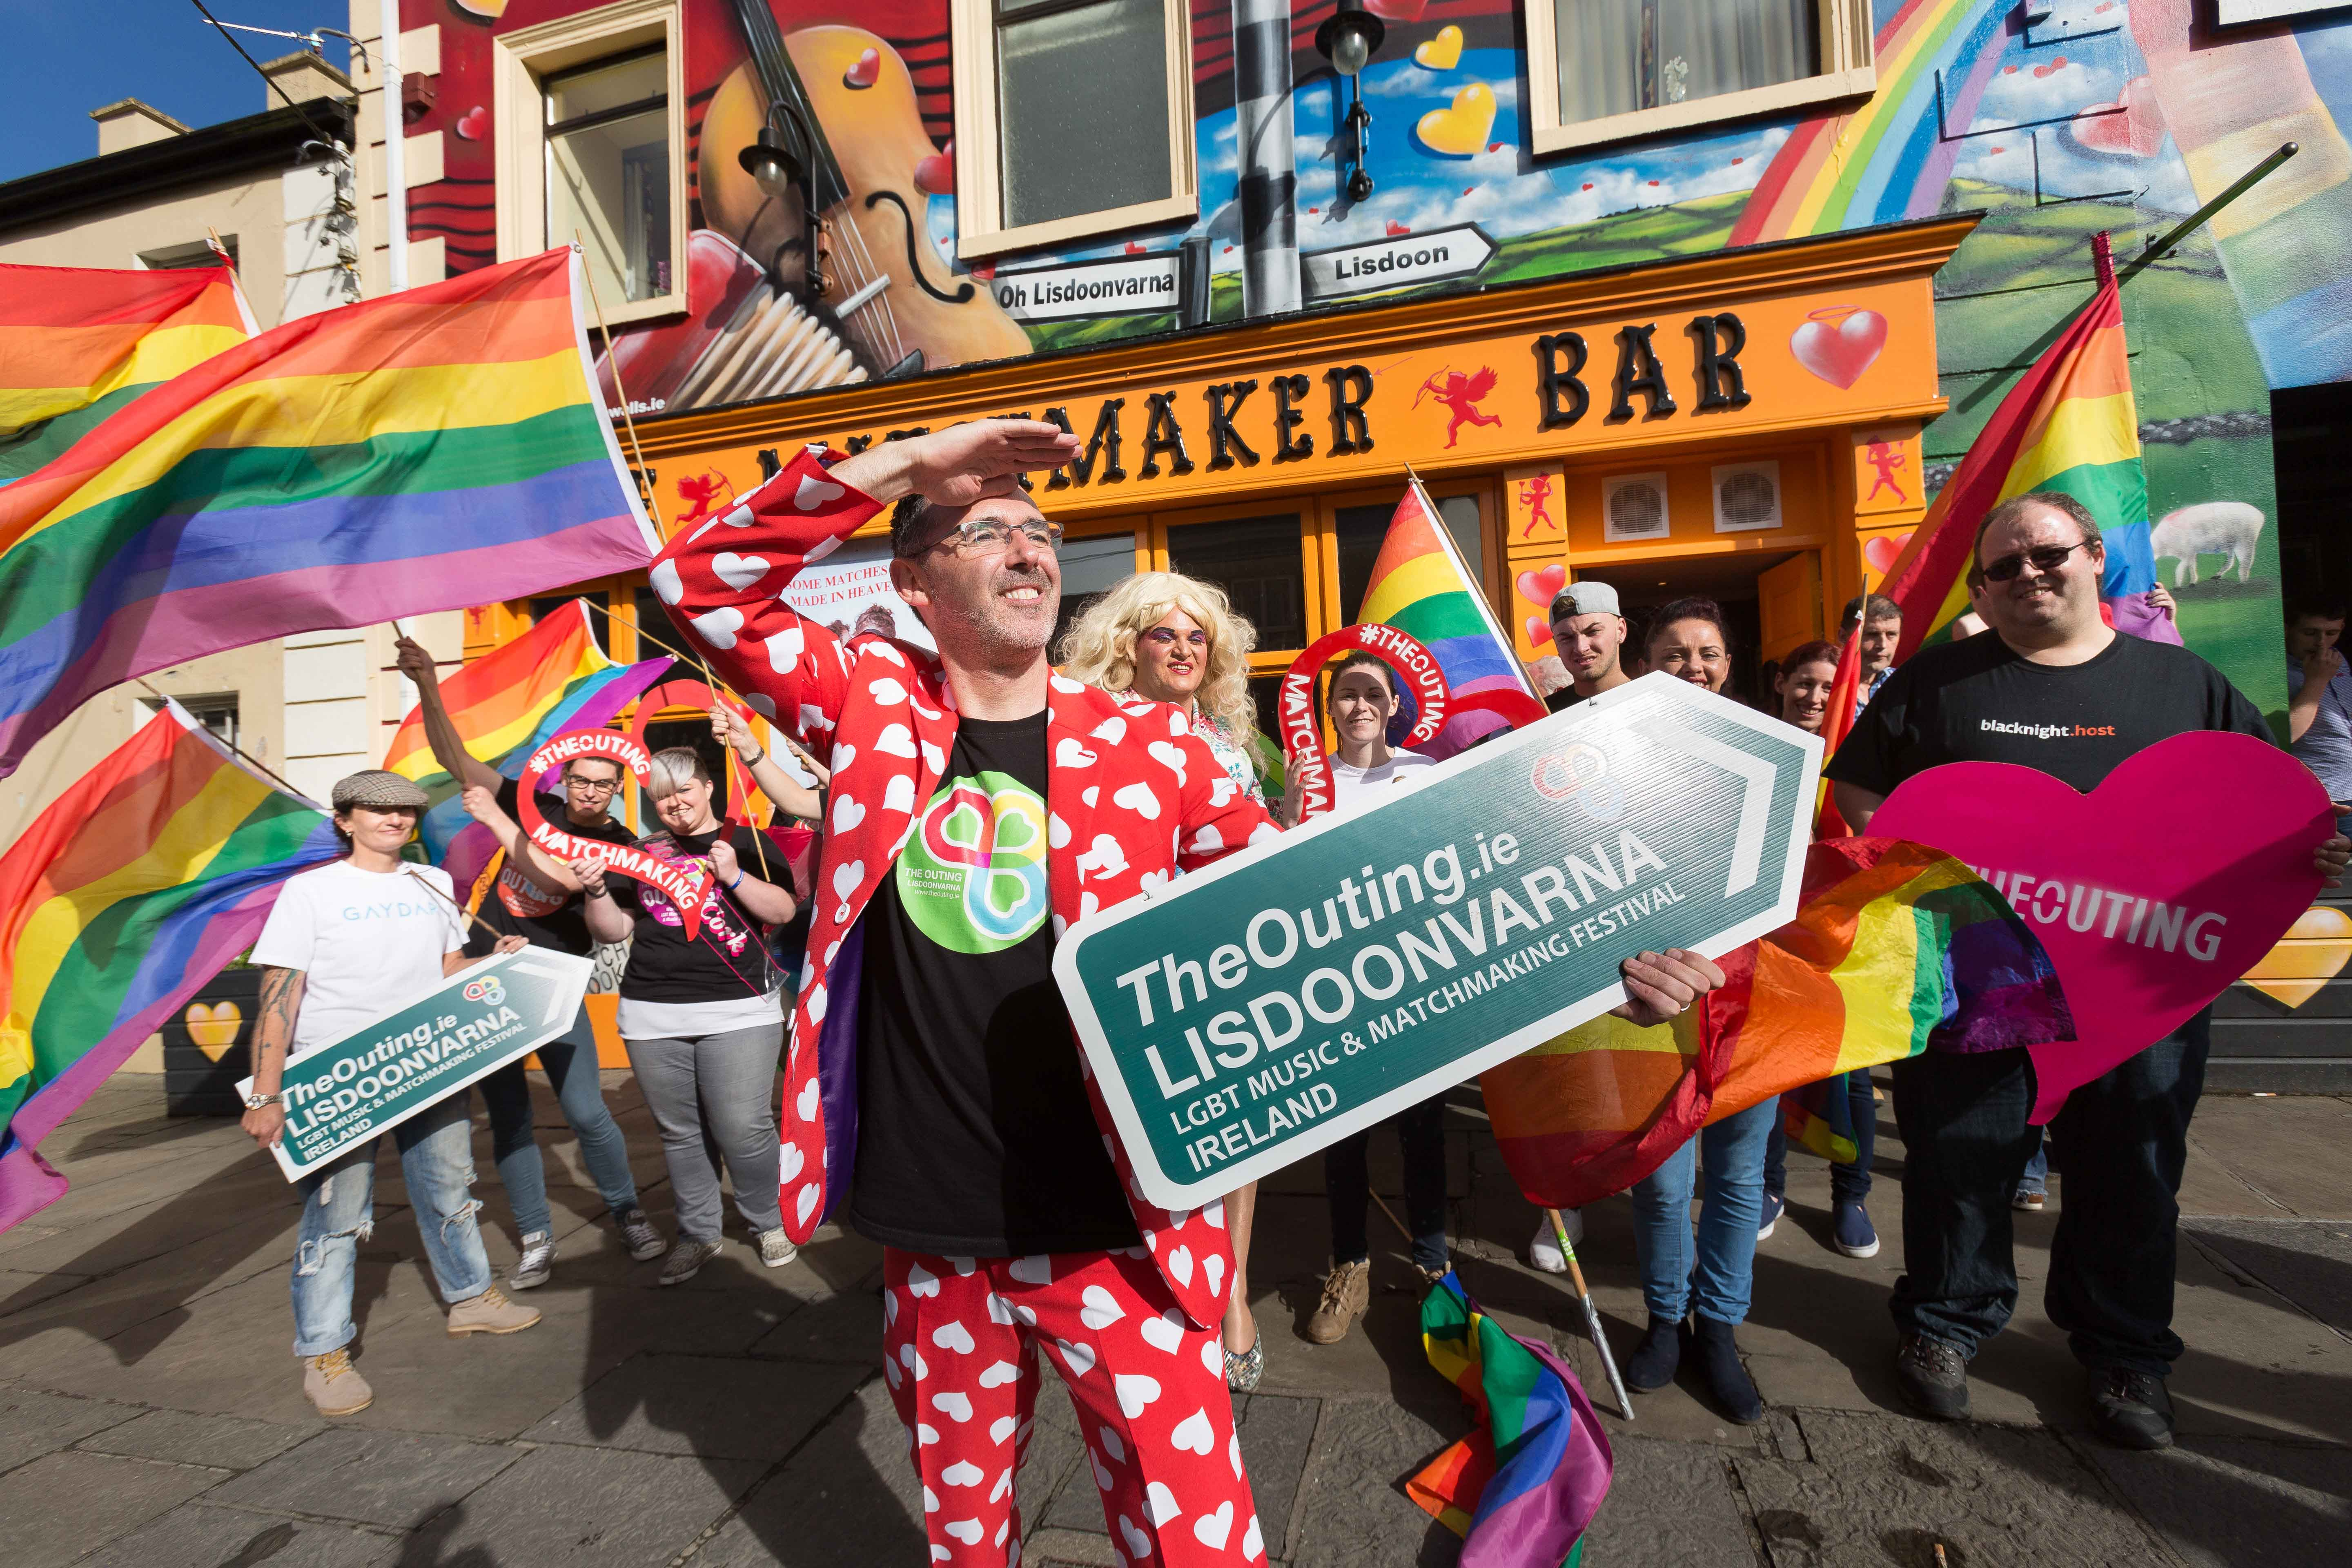 eddie-mcguinness-looking-out-for-love-at-the-outing-lgbt-matchmaking-music-festival-lisdoonvarna